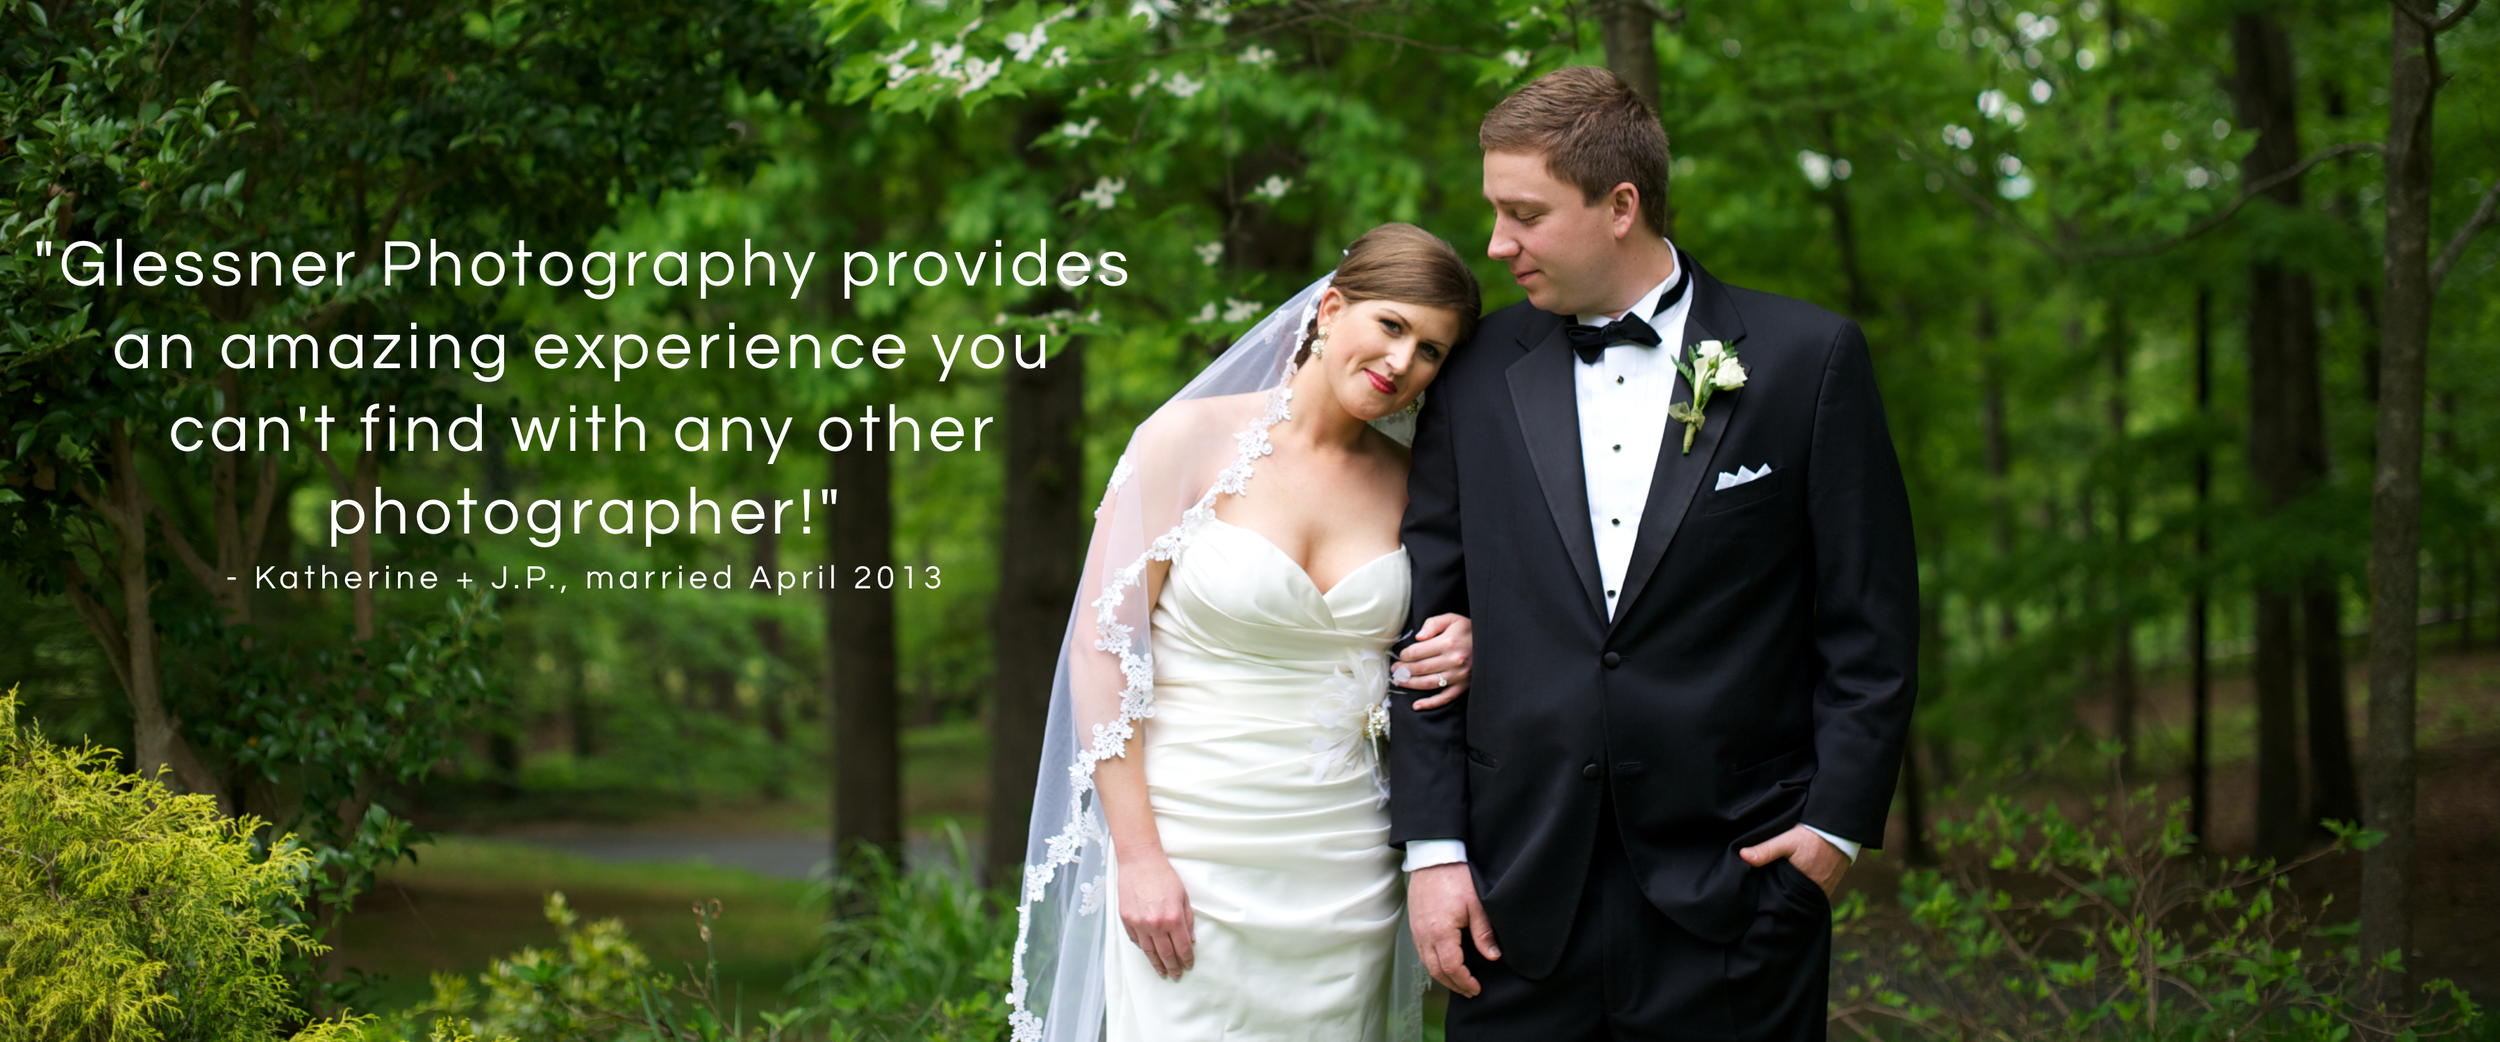 """J.P. Perkins and Katherine Henry's Asheboro, NC wedding was held at the Henry family home. The bride and groom said of their Asheboro wedding photographers, """"Glessner Photography provides an amazing experience you can't find with any other photographer!"""""""